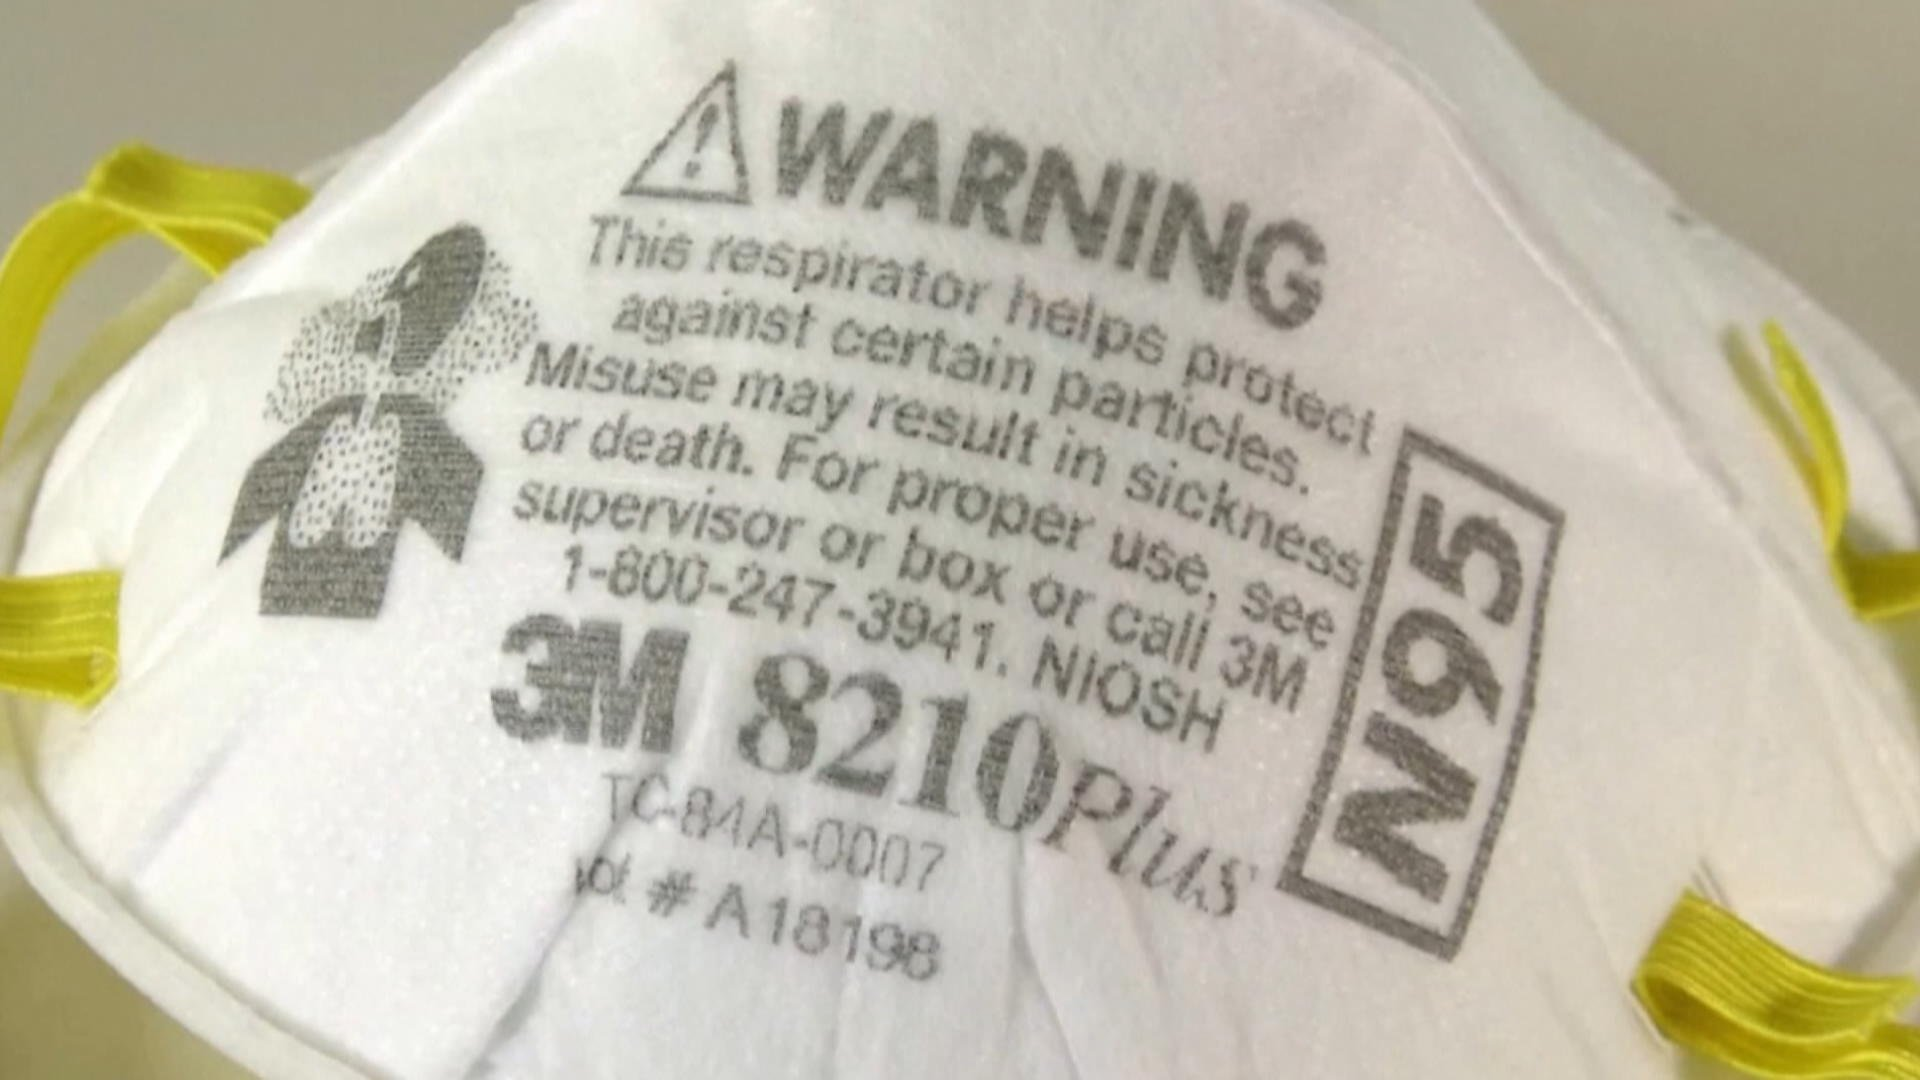 Coronavirus: Ontario stockpiled 55 million N95 masks after SARS, officials checking usability